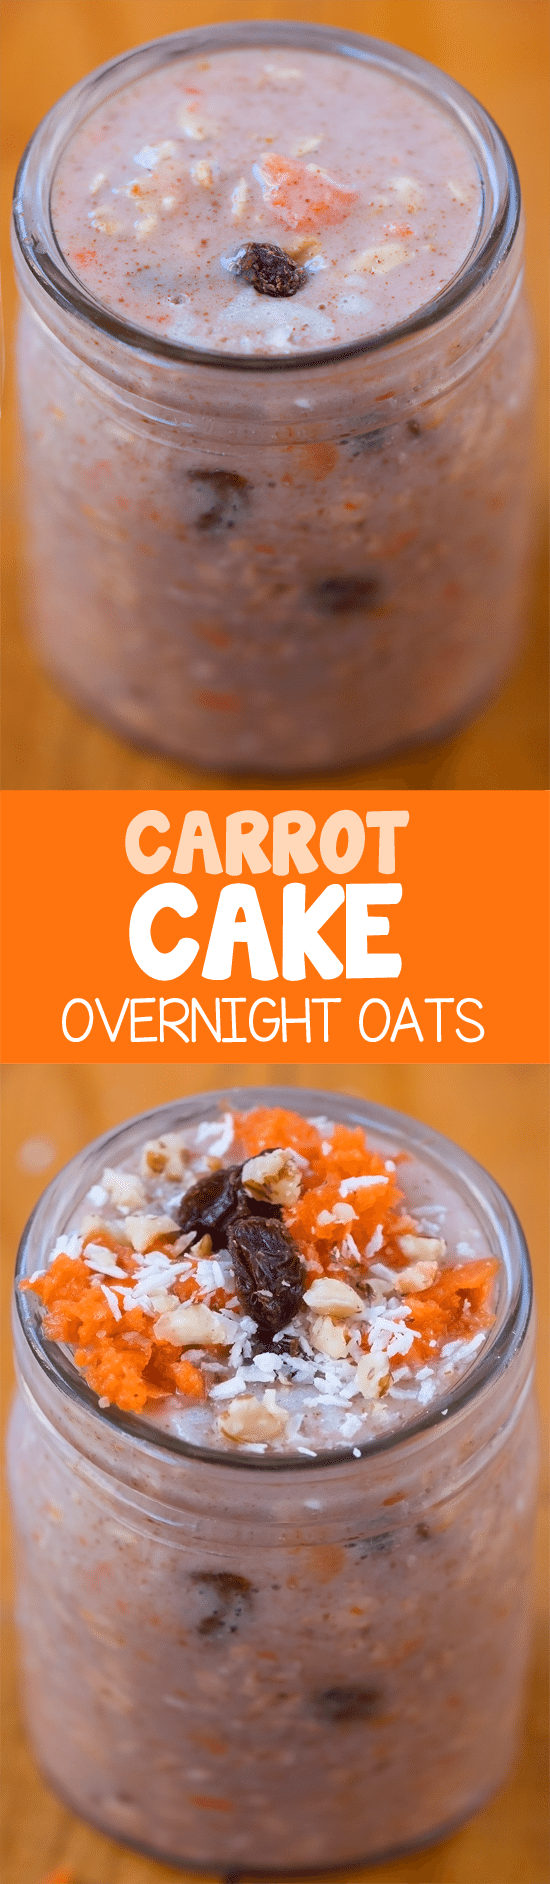 A filling & nutritious breakfast that gives you all the sweet flavor of real carrot cake, with more than 50% of your daily Vitamin A requirement and over 9 grams of fiber!